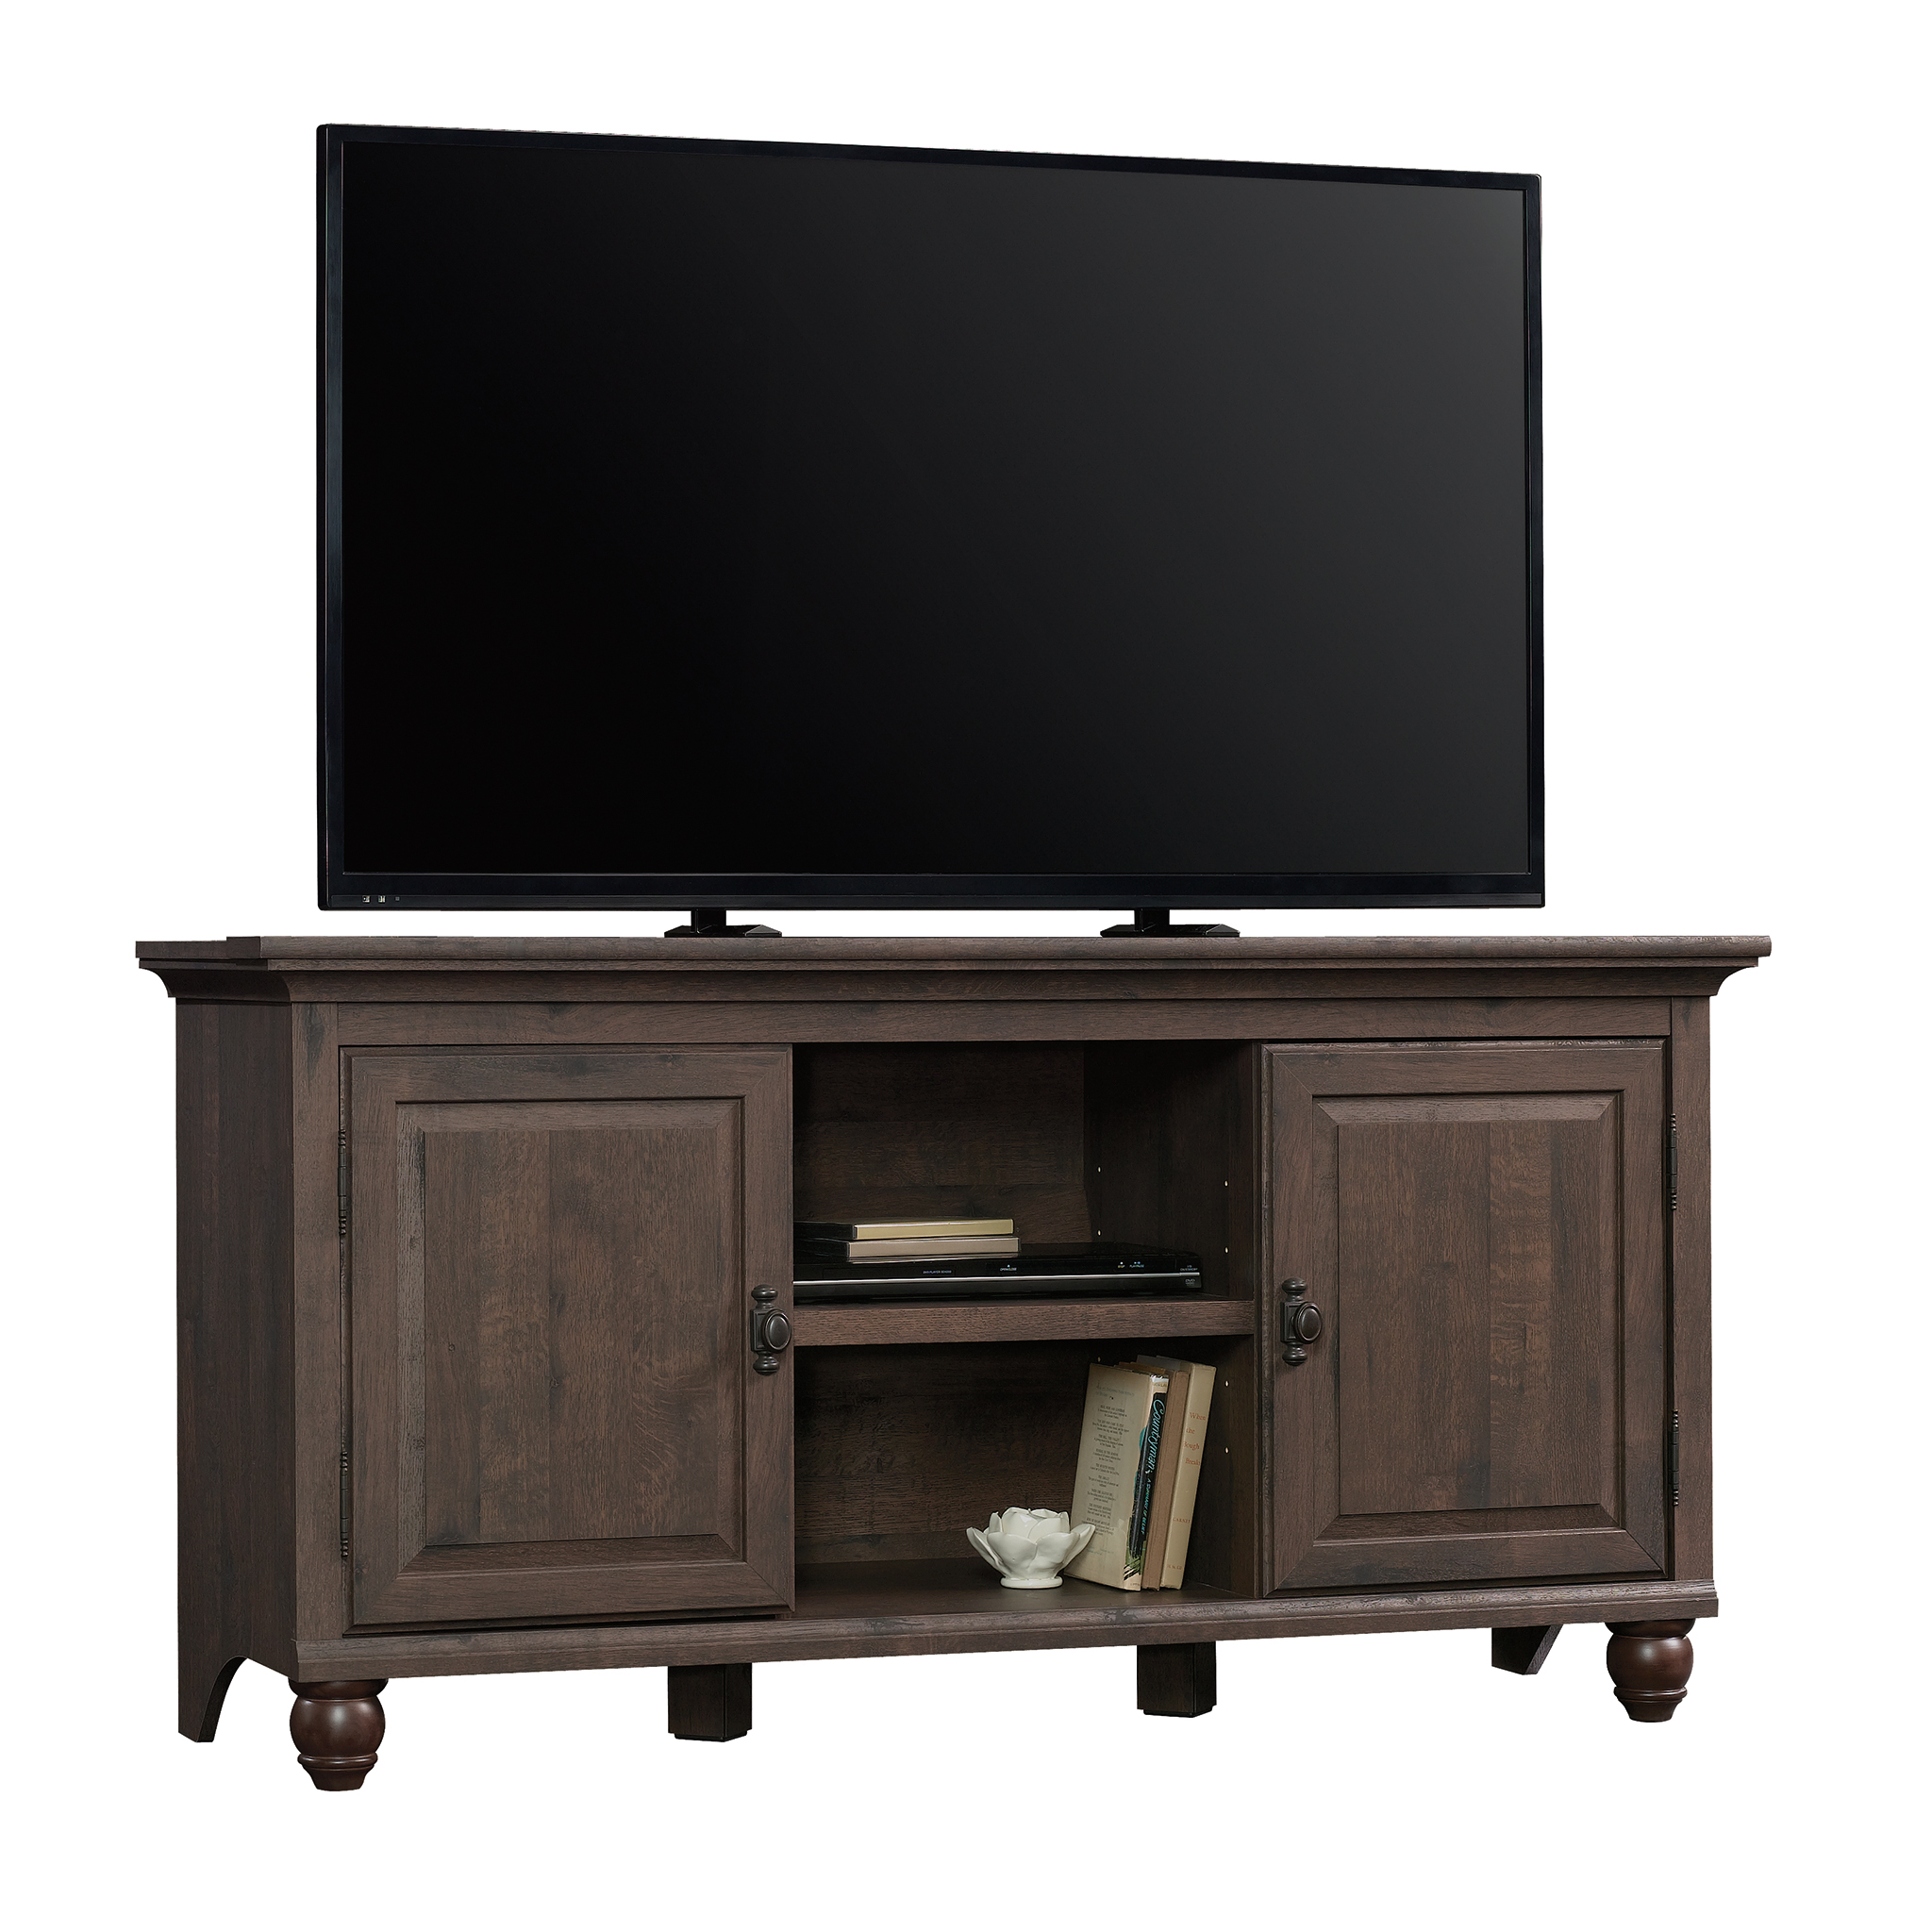 Click here to buy Better Homes and Gardens Crossmill Collection TV Stand & Console Cabinet for TVs up to 65\ by Sauder Woodworking.